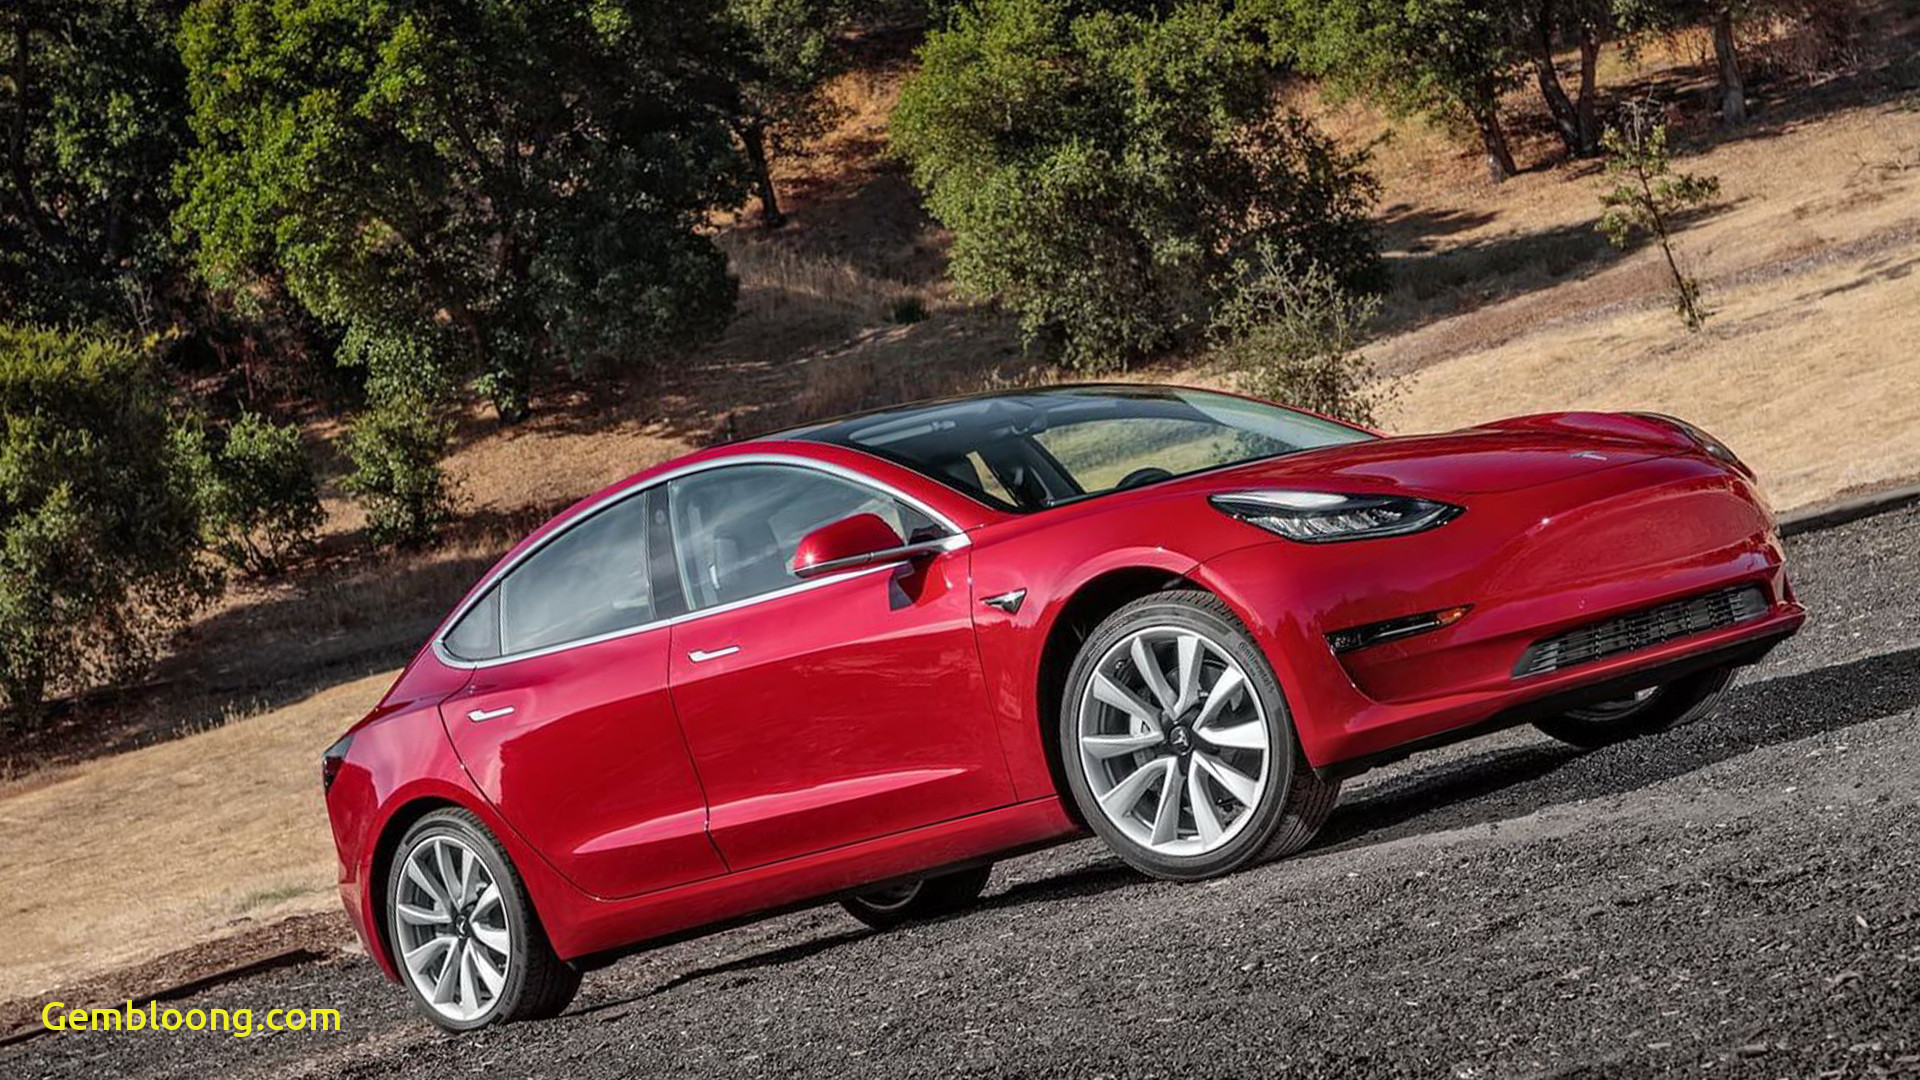 Tesla 2020 Model 3 Unique Tesla Model 3 Specs and First Pictures Cars Previews